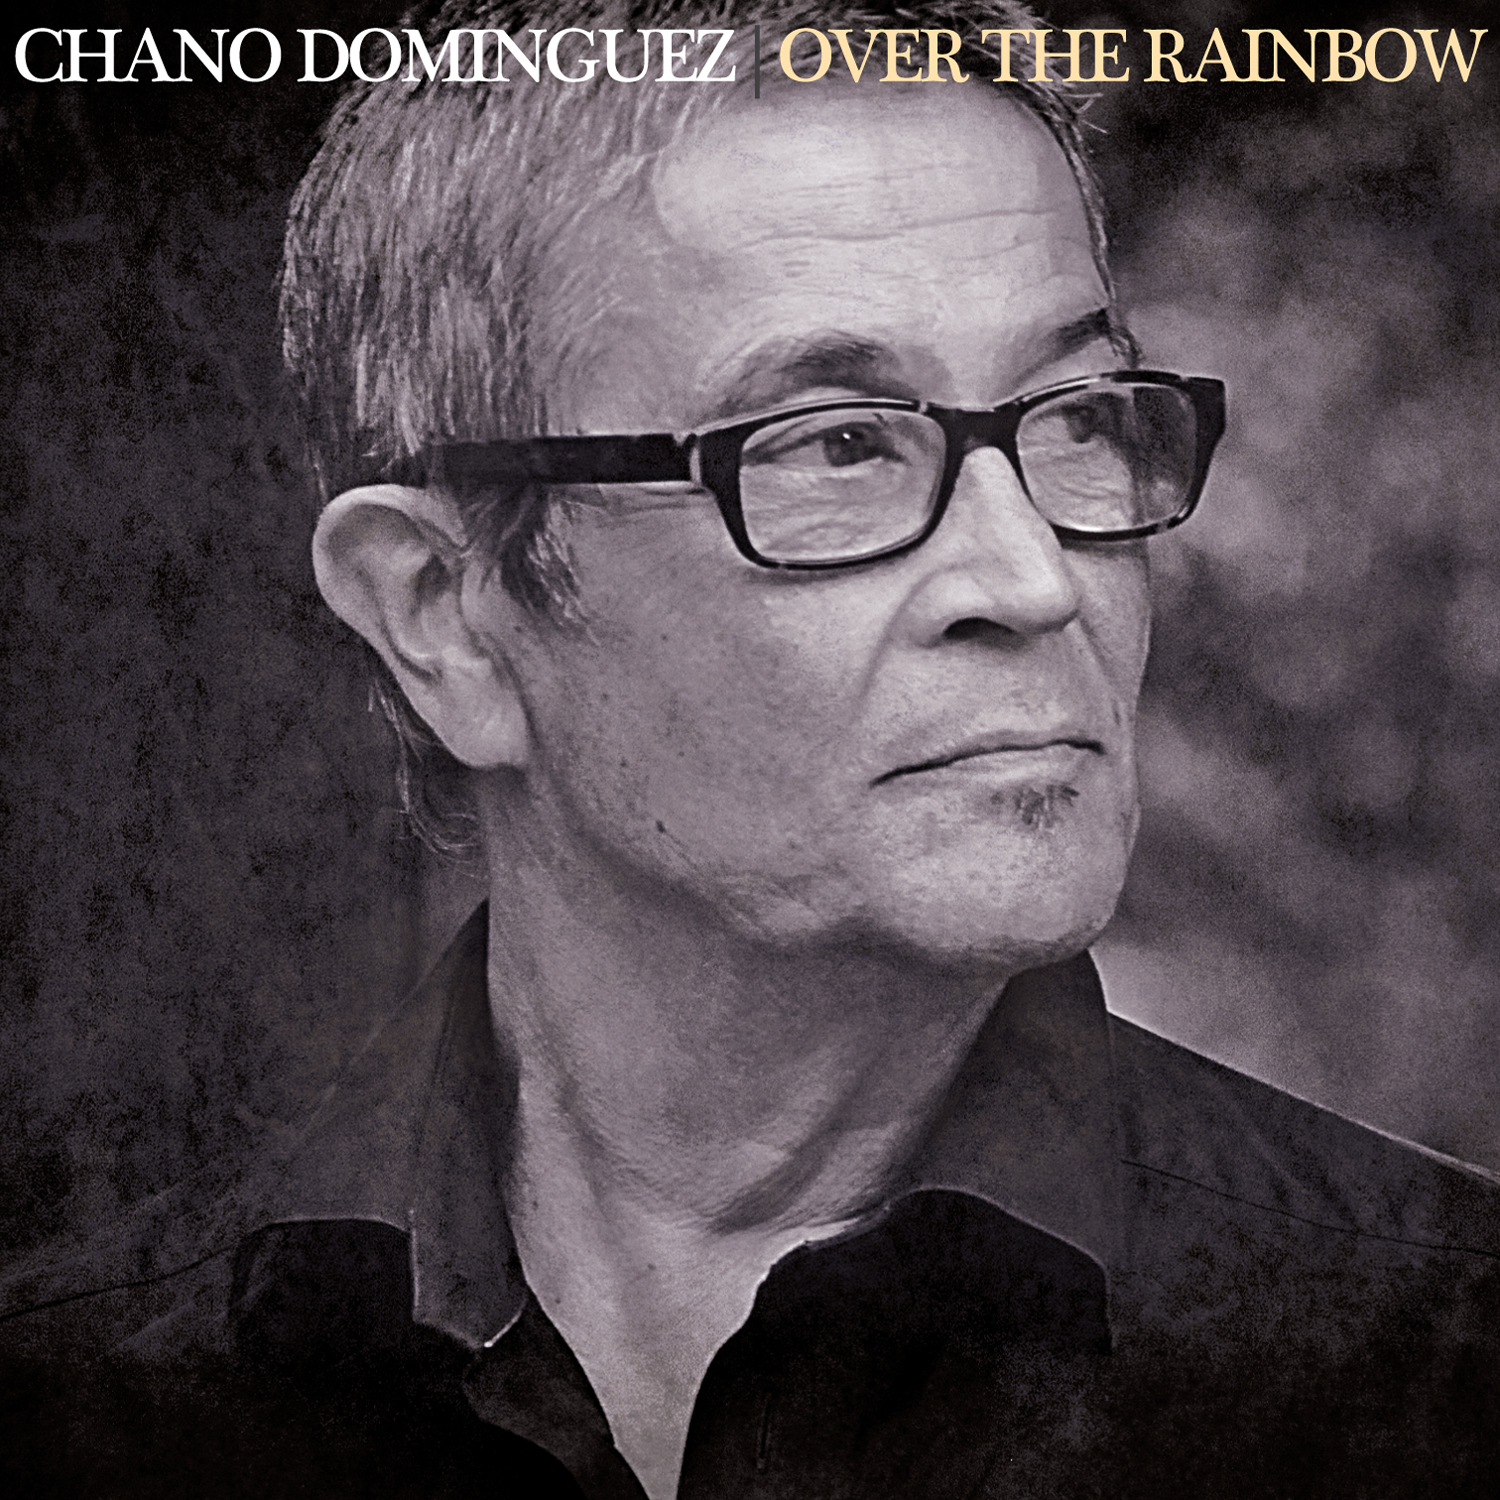 Over The Rainbow  by Chano  Dominguez cover